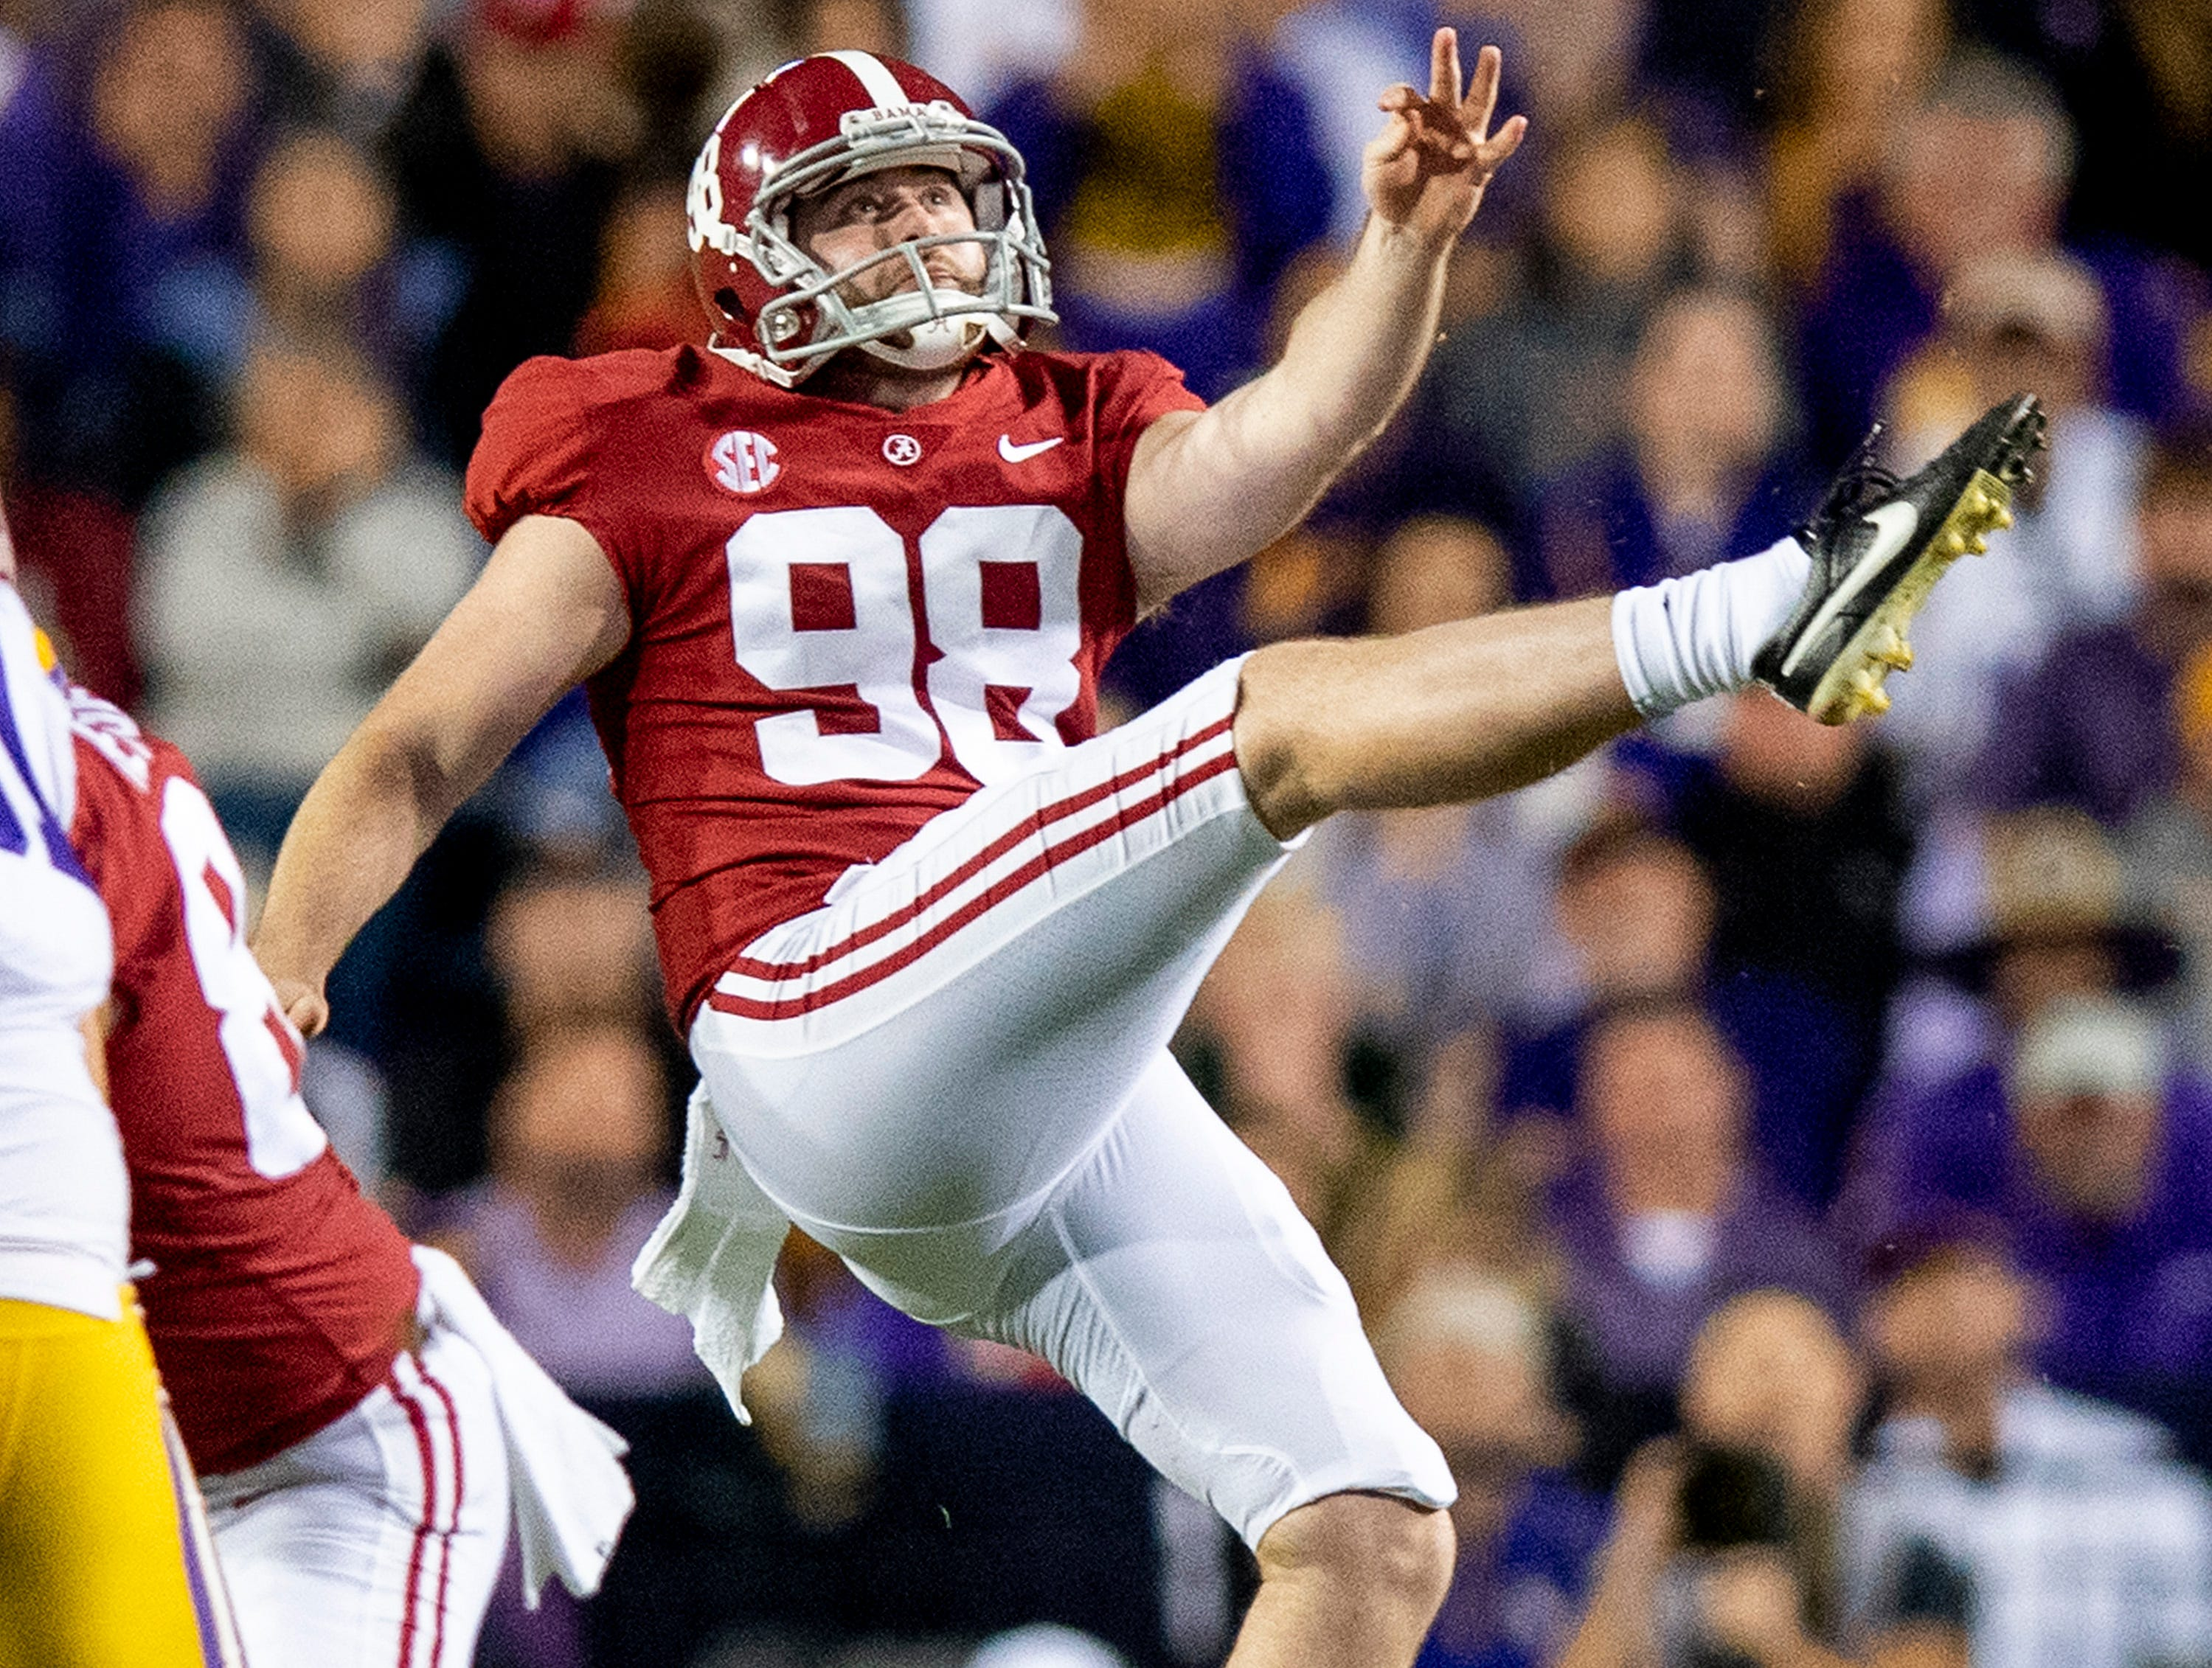 Alabama punter Mike Bernier (98) punts against LSU in second half action at Tiger Stadium in Baton Rouge, La., on Saturday November 3, 2018.